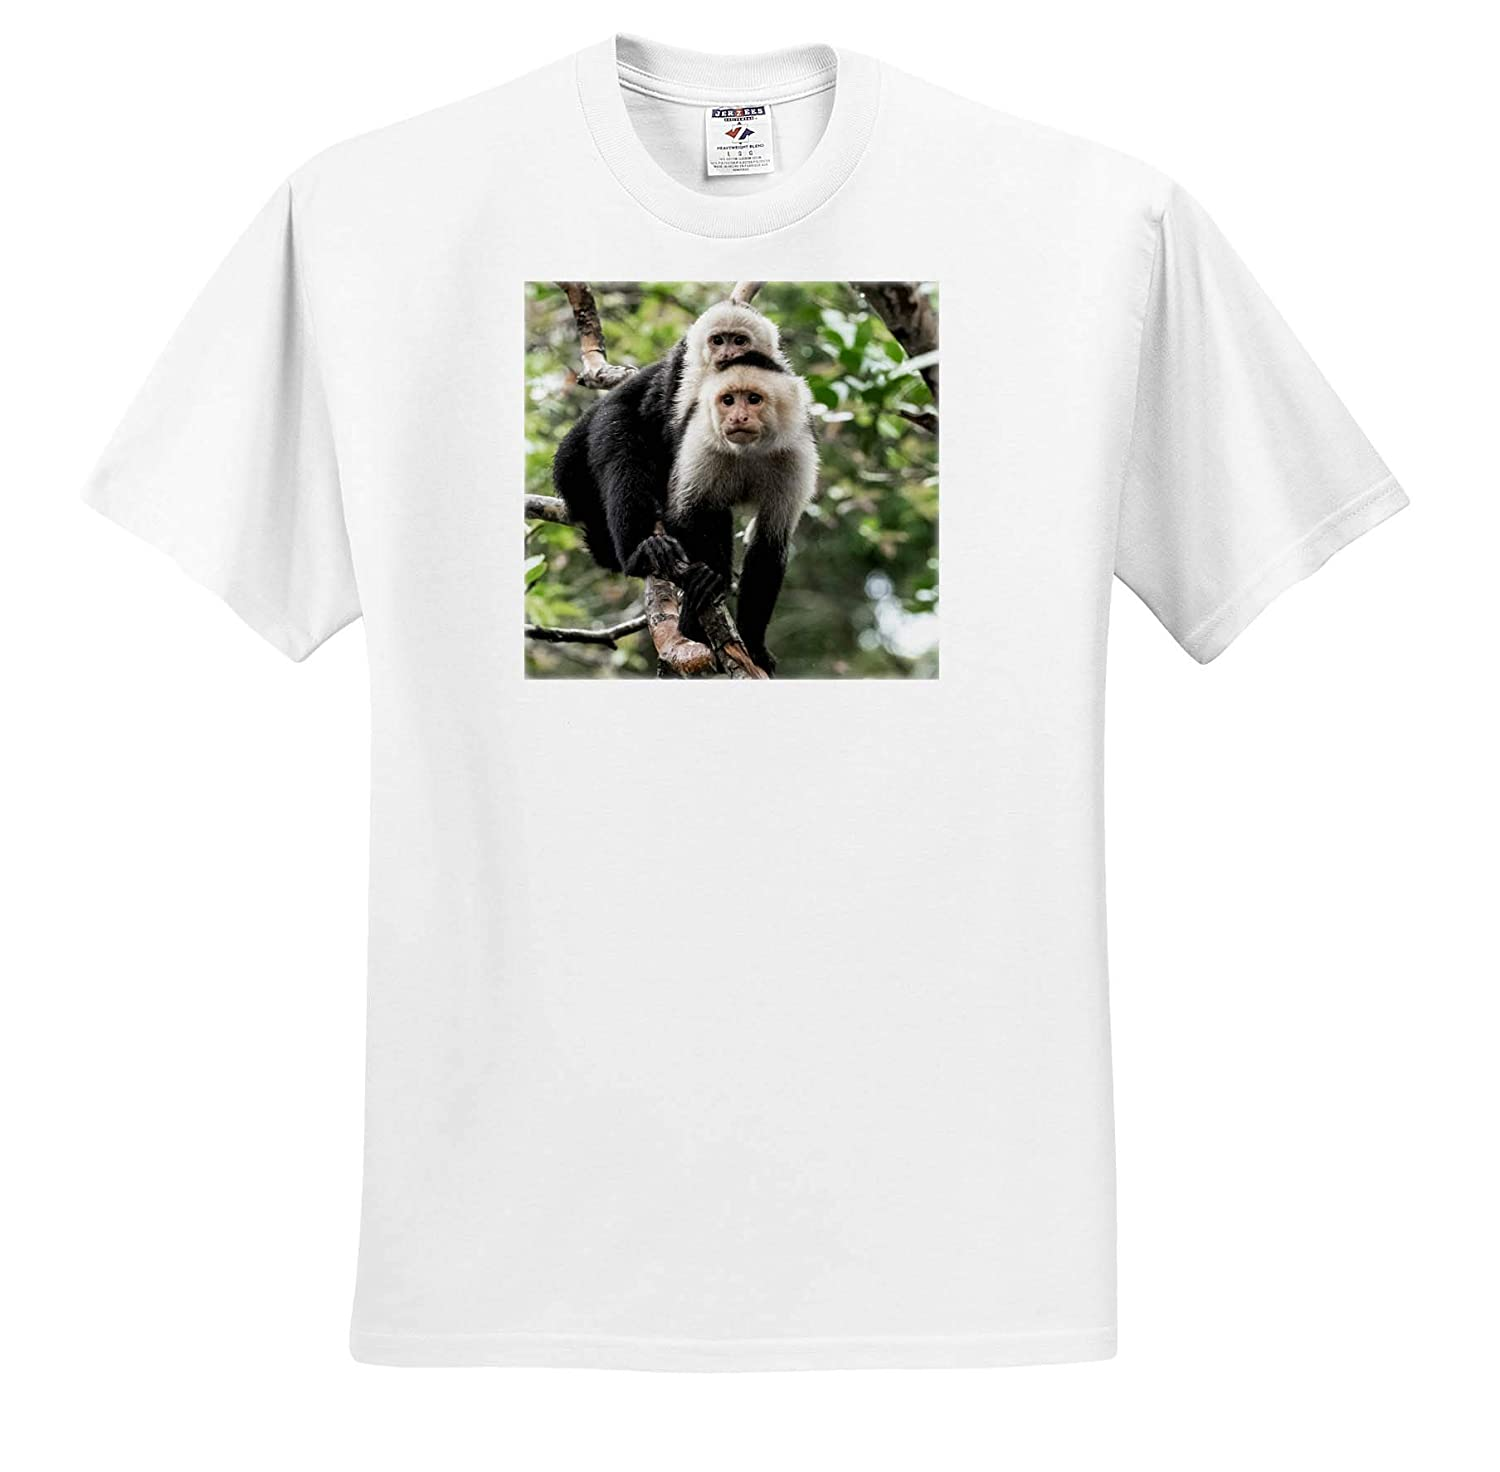 3dRose RONI Chastain Photography T-Shirts Monkey mom and Baby